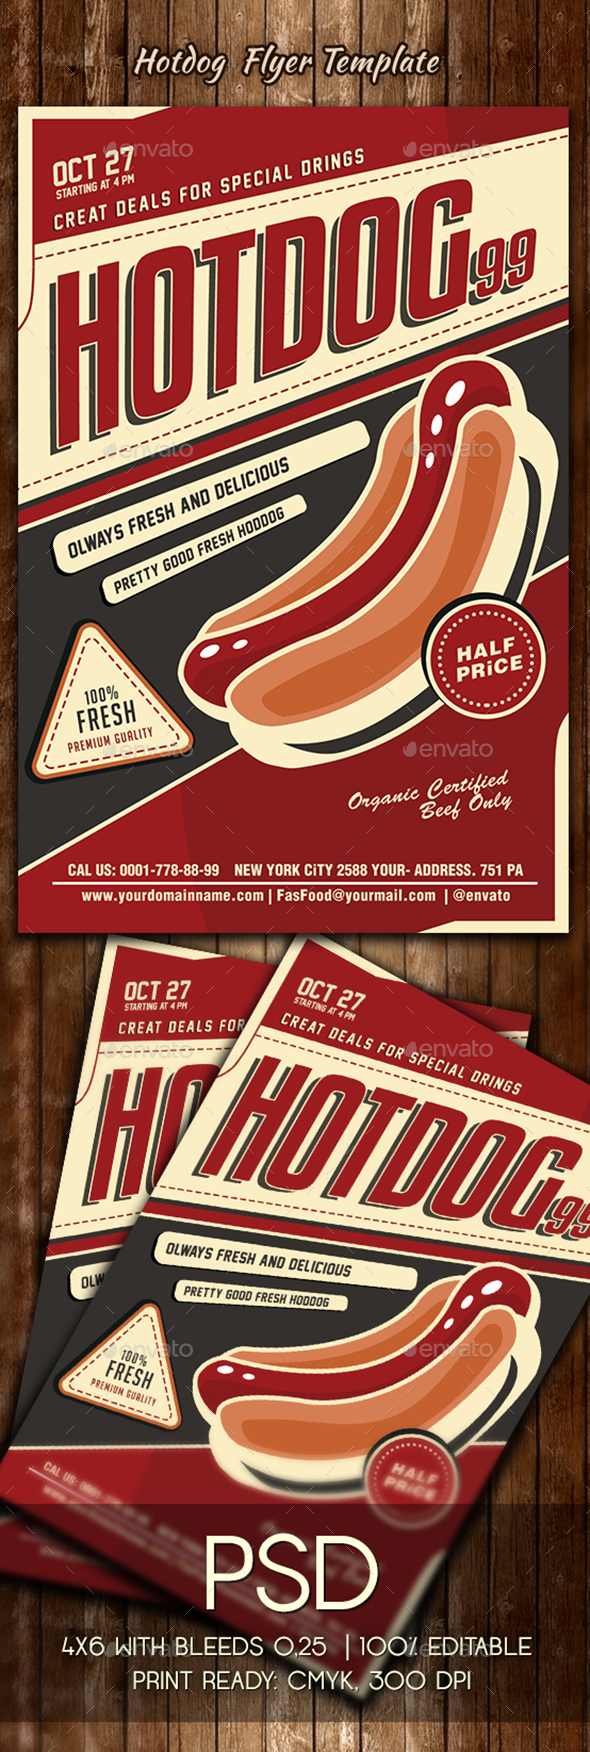 Hotdog Flyer Template - Restaurant Flyers